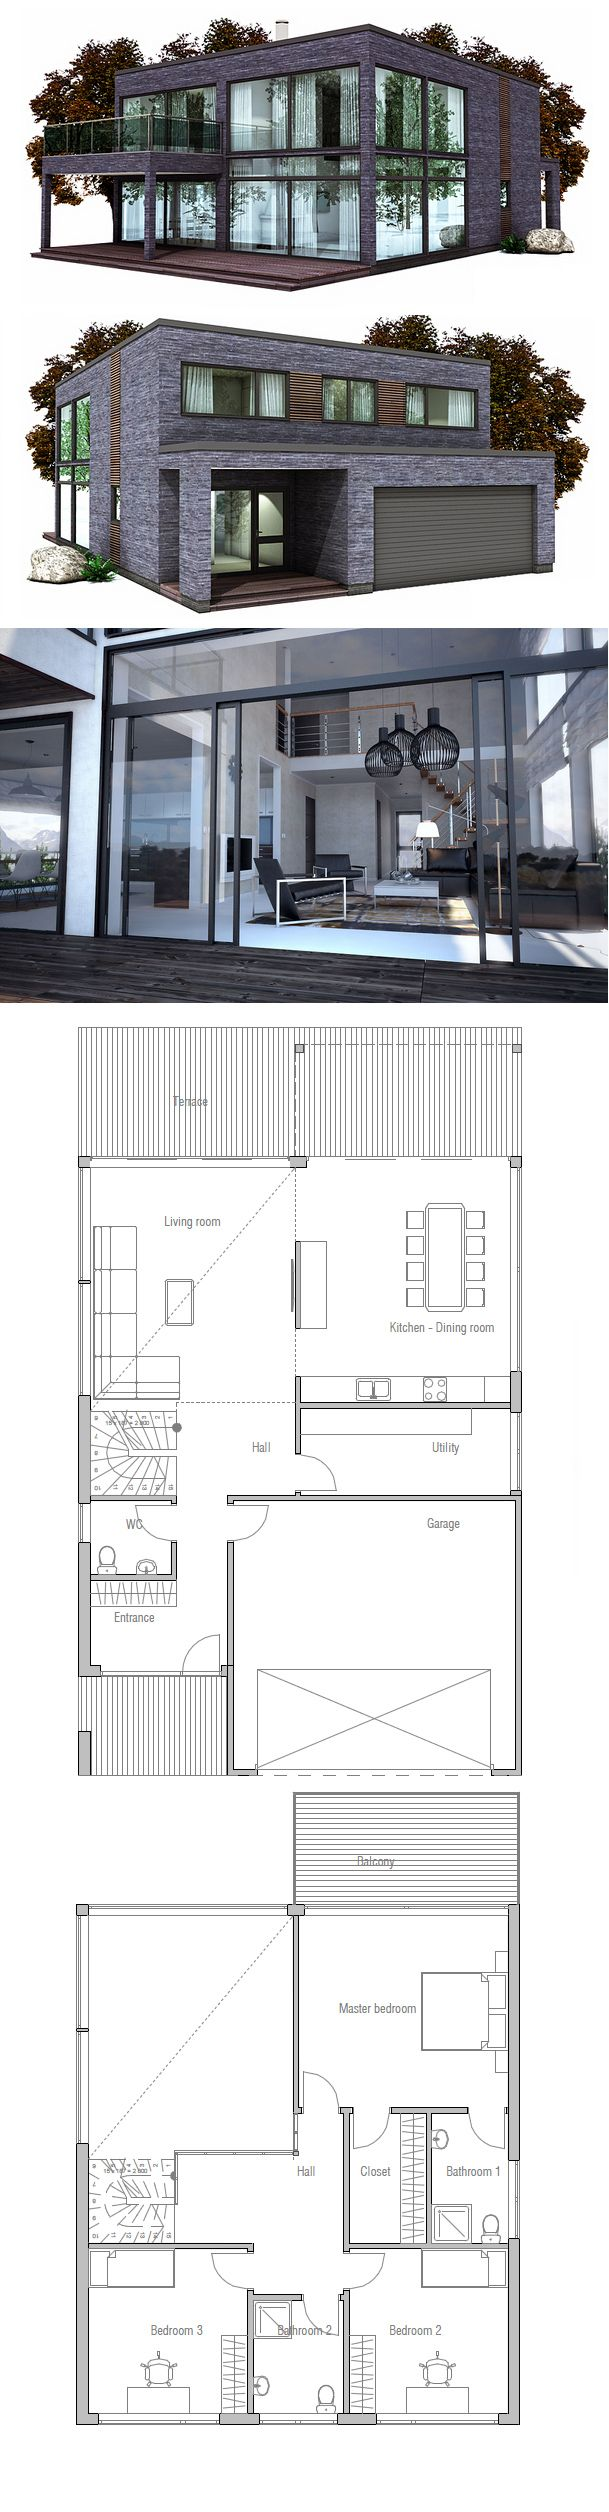 Architecture House Floor Plans 688 best plans for apartments & houses images on pinterest